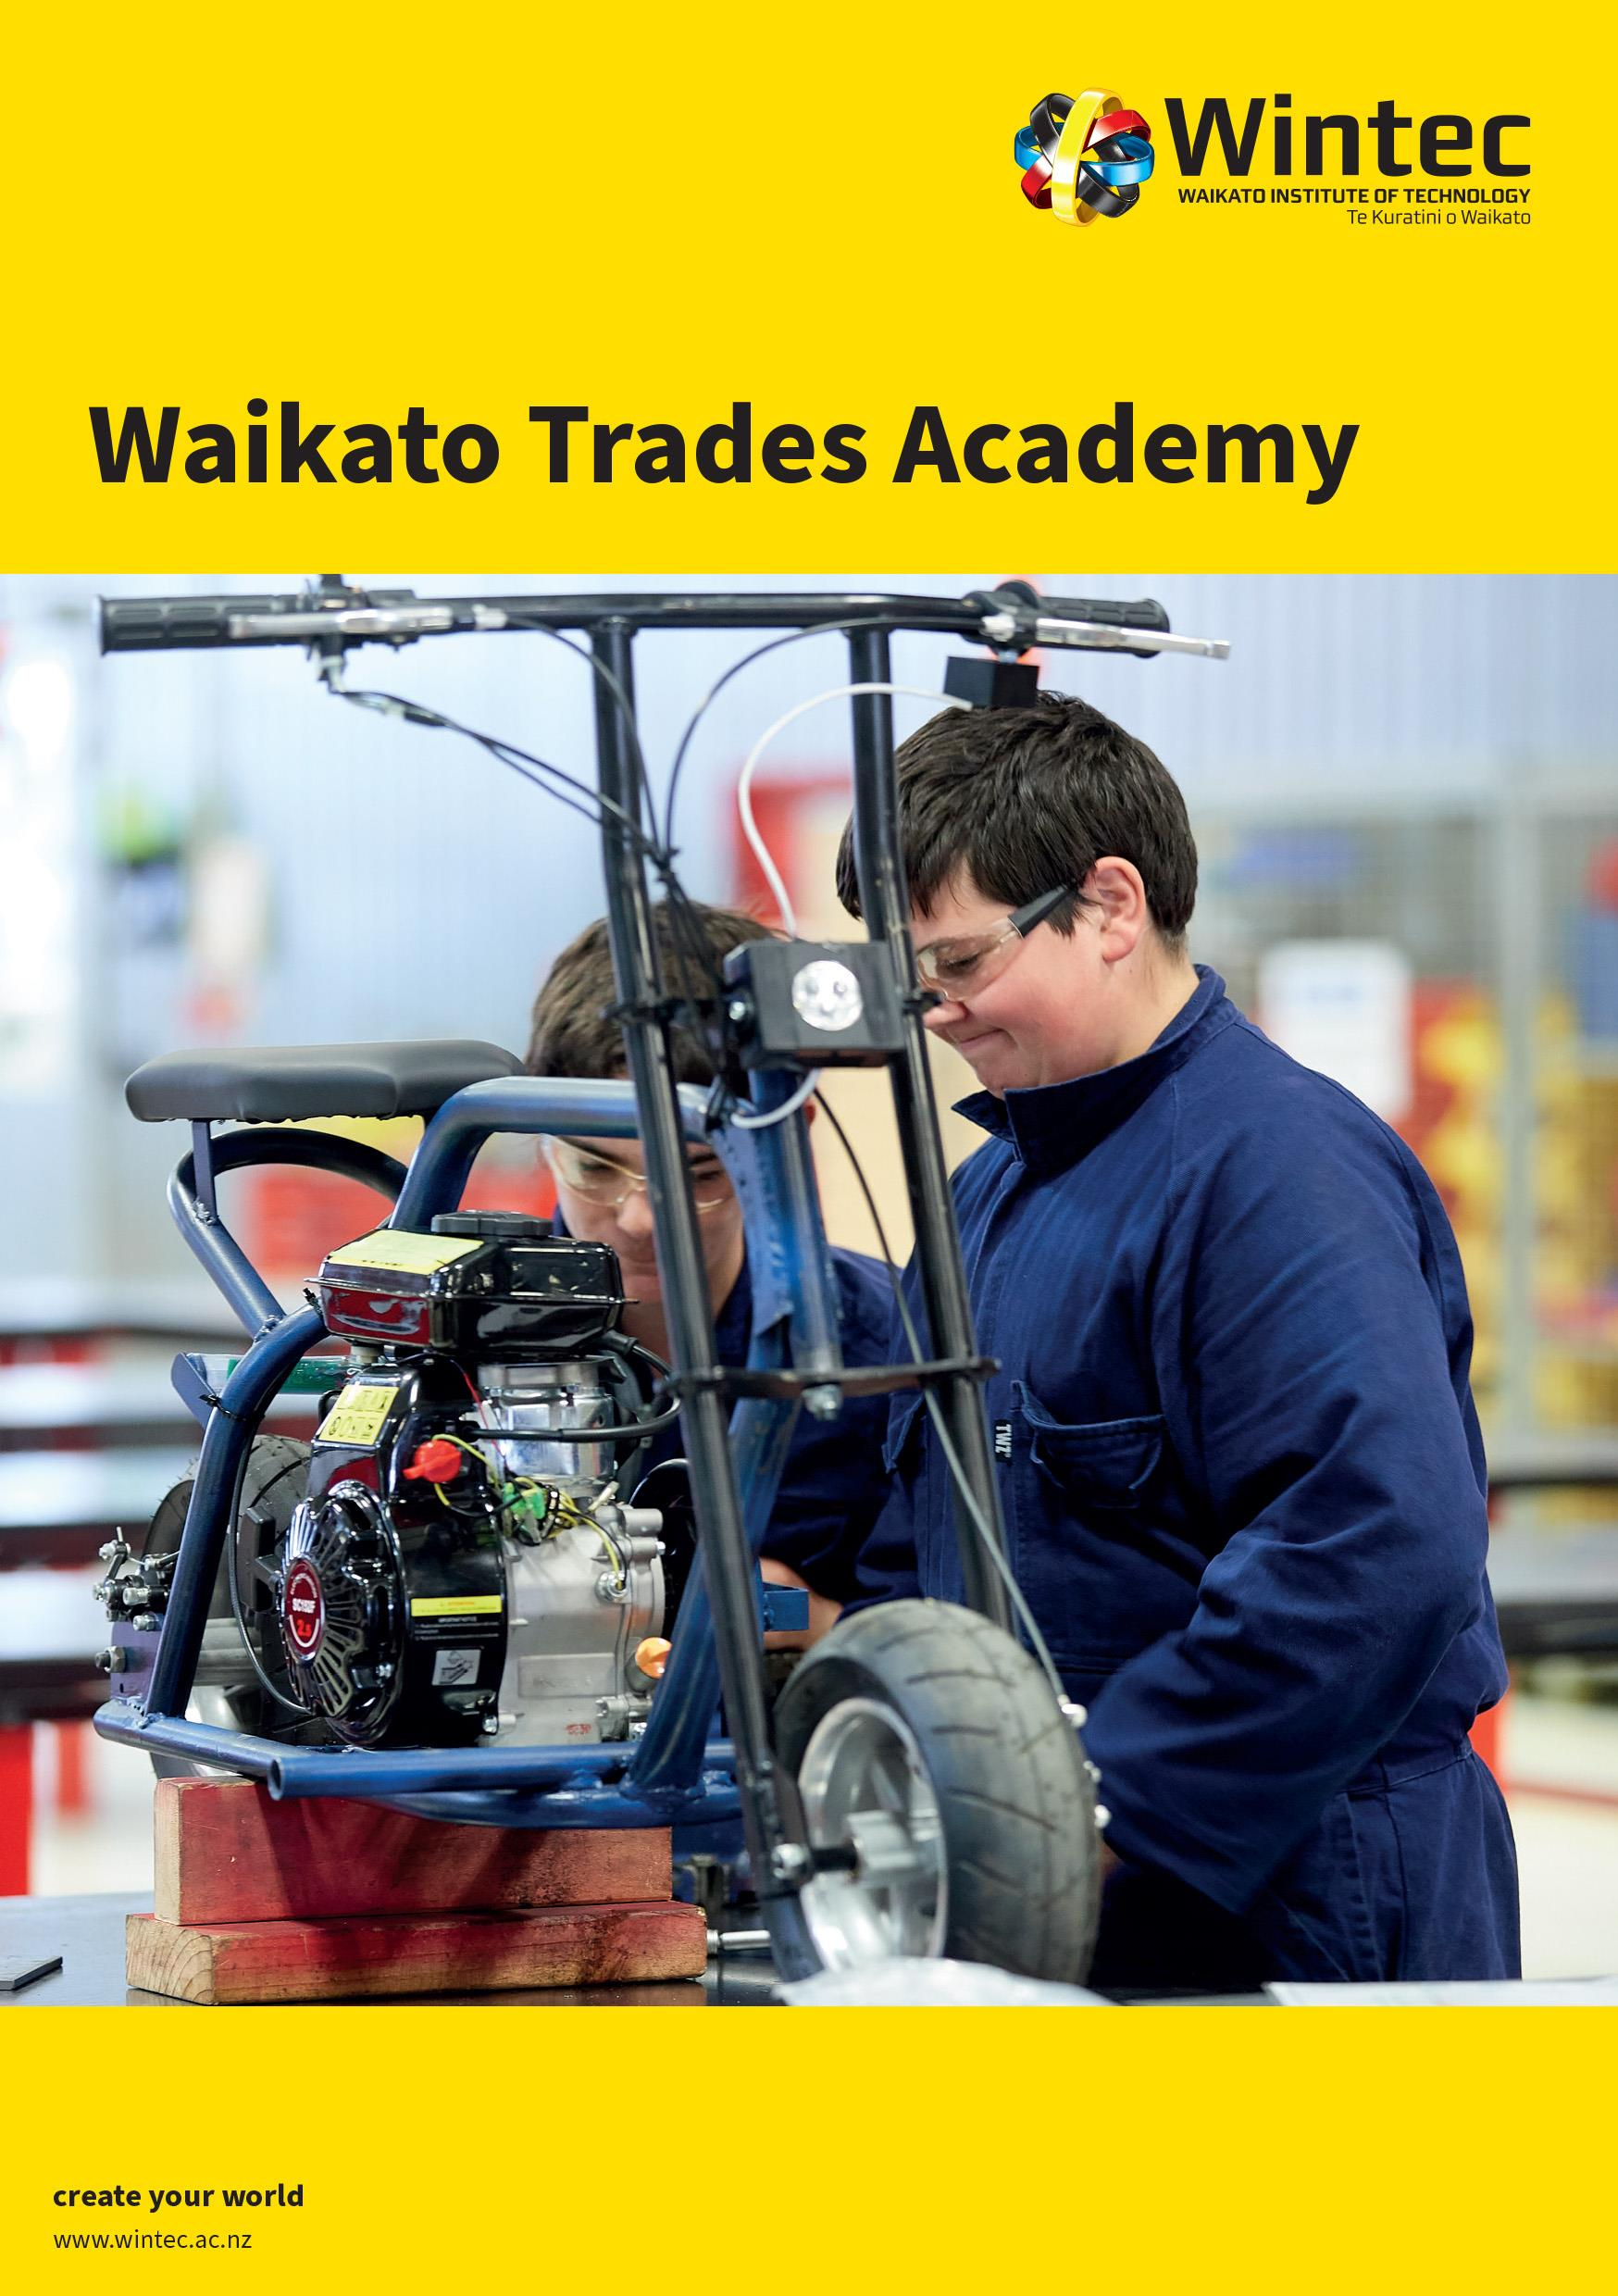 Waikato Trades Academy booklet programme guide image